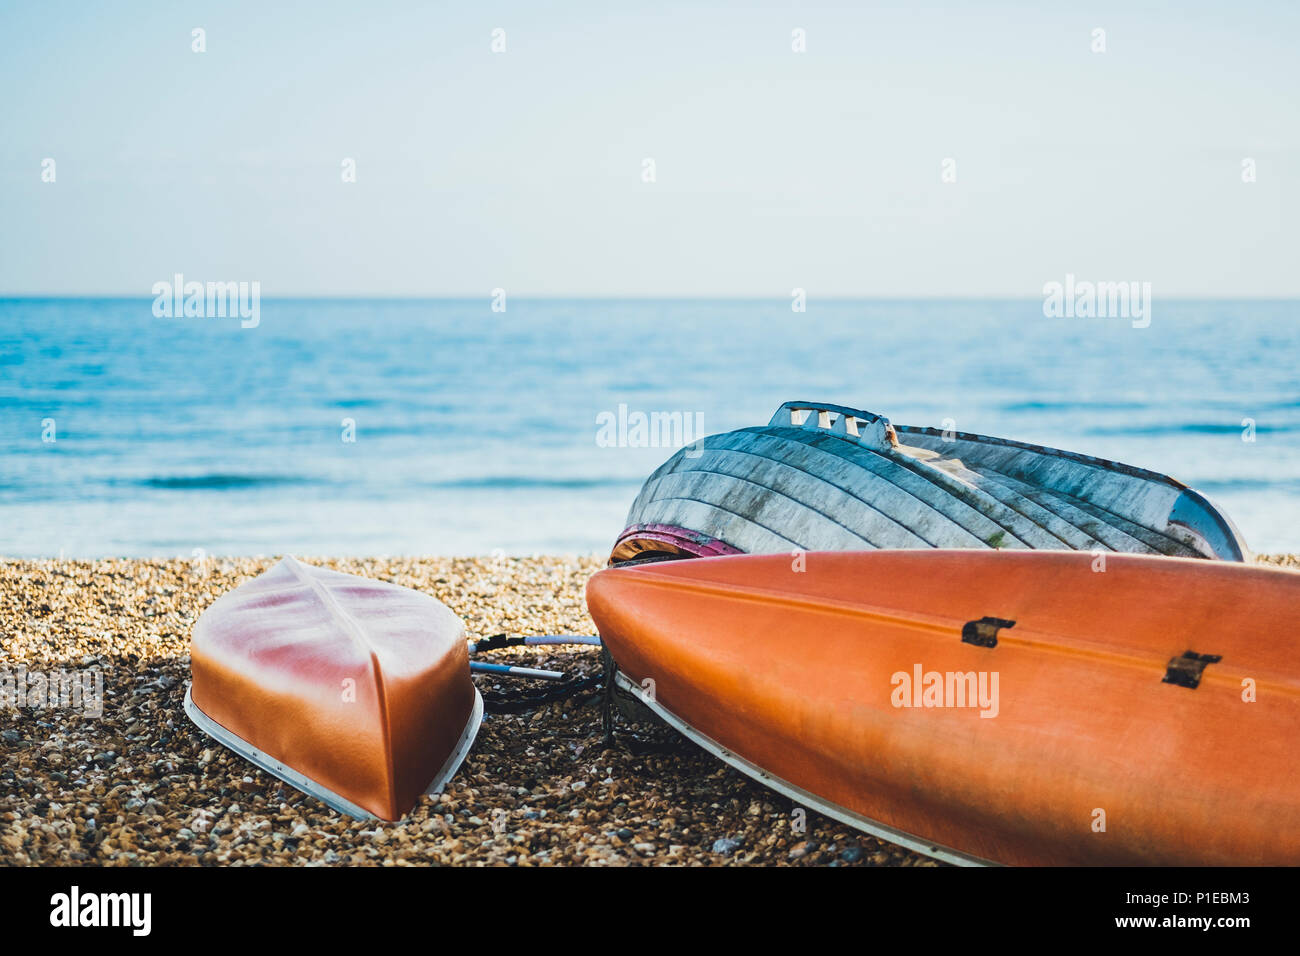 Boats on the beach, boat rentals, Brighton, England Stock Photo